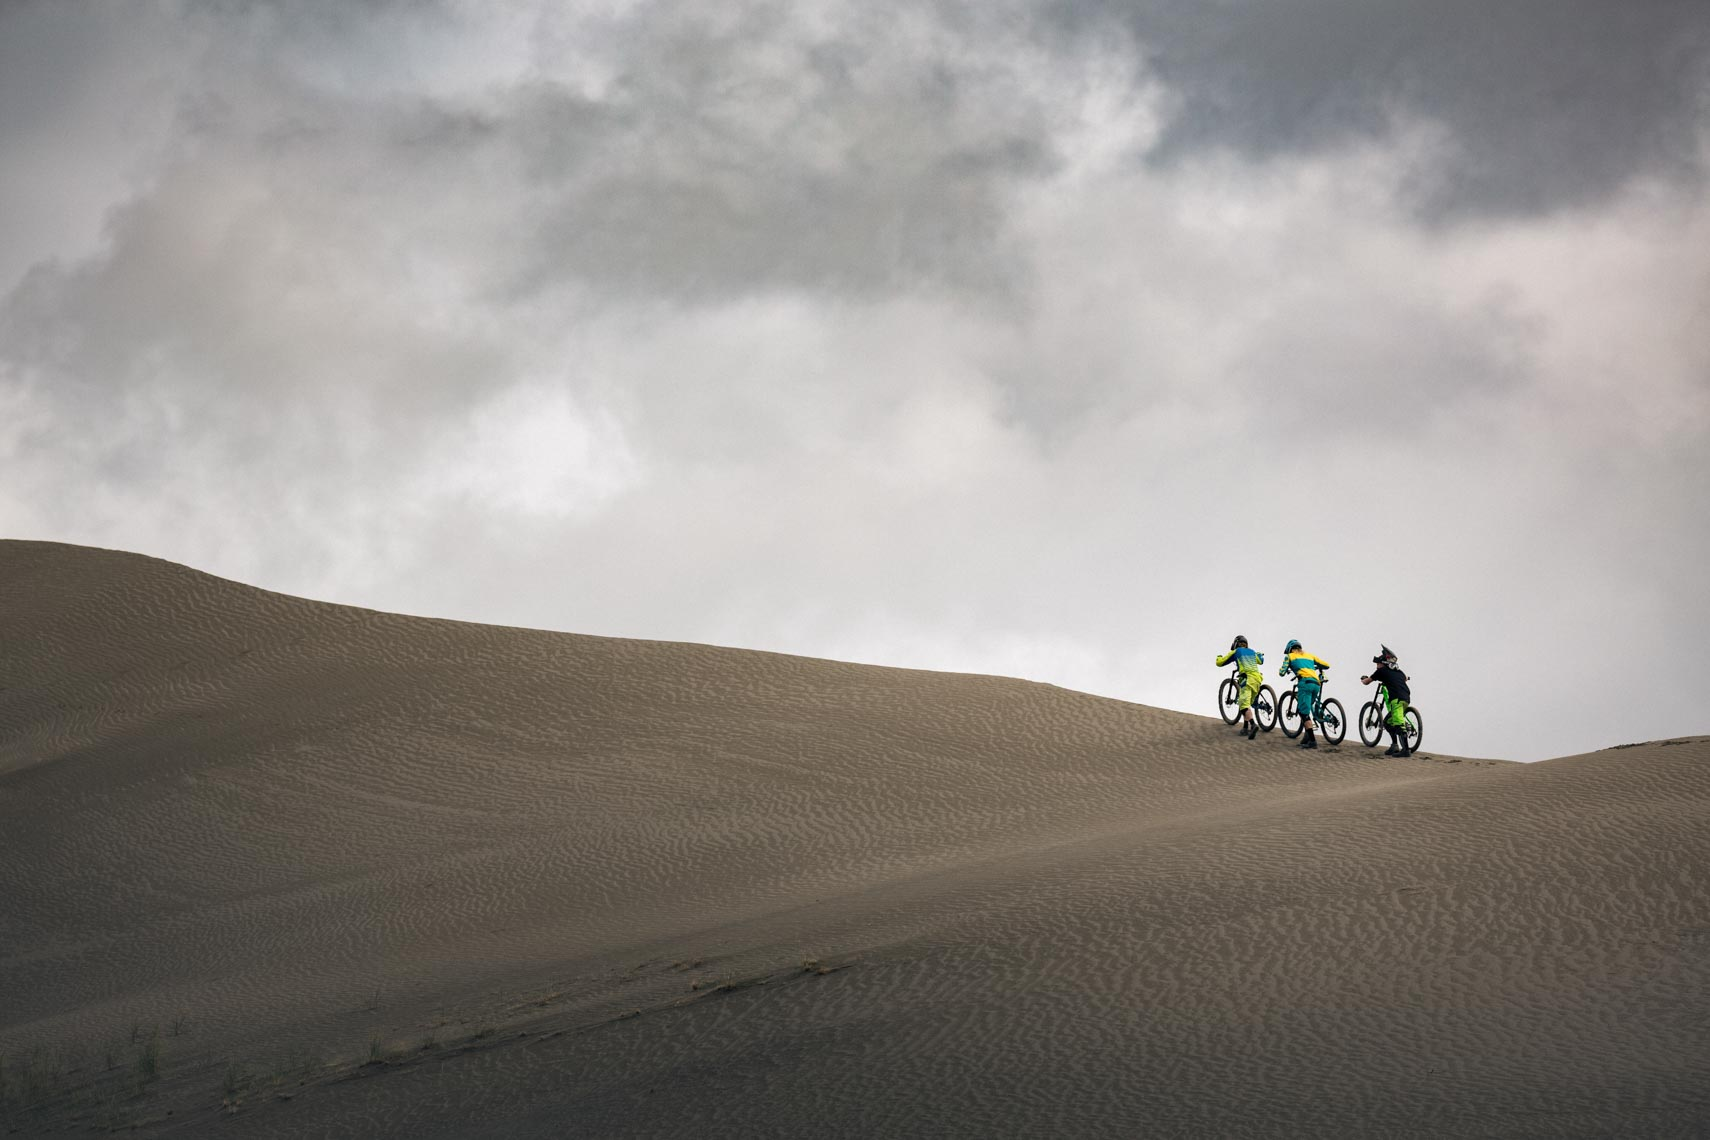 Mountain bike athletes on a sand dune in British Columbia